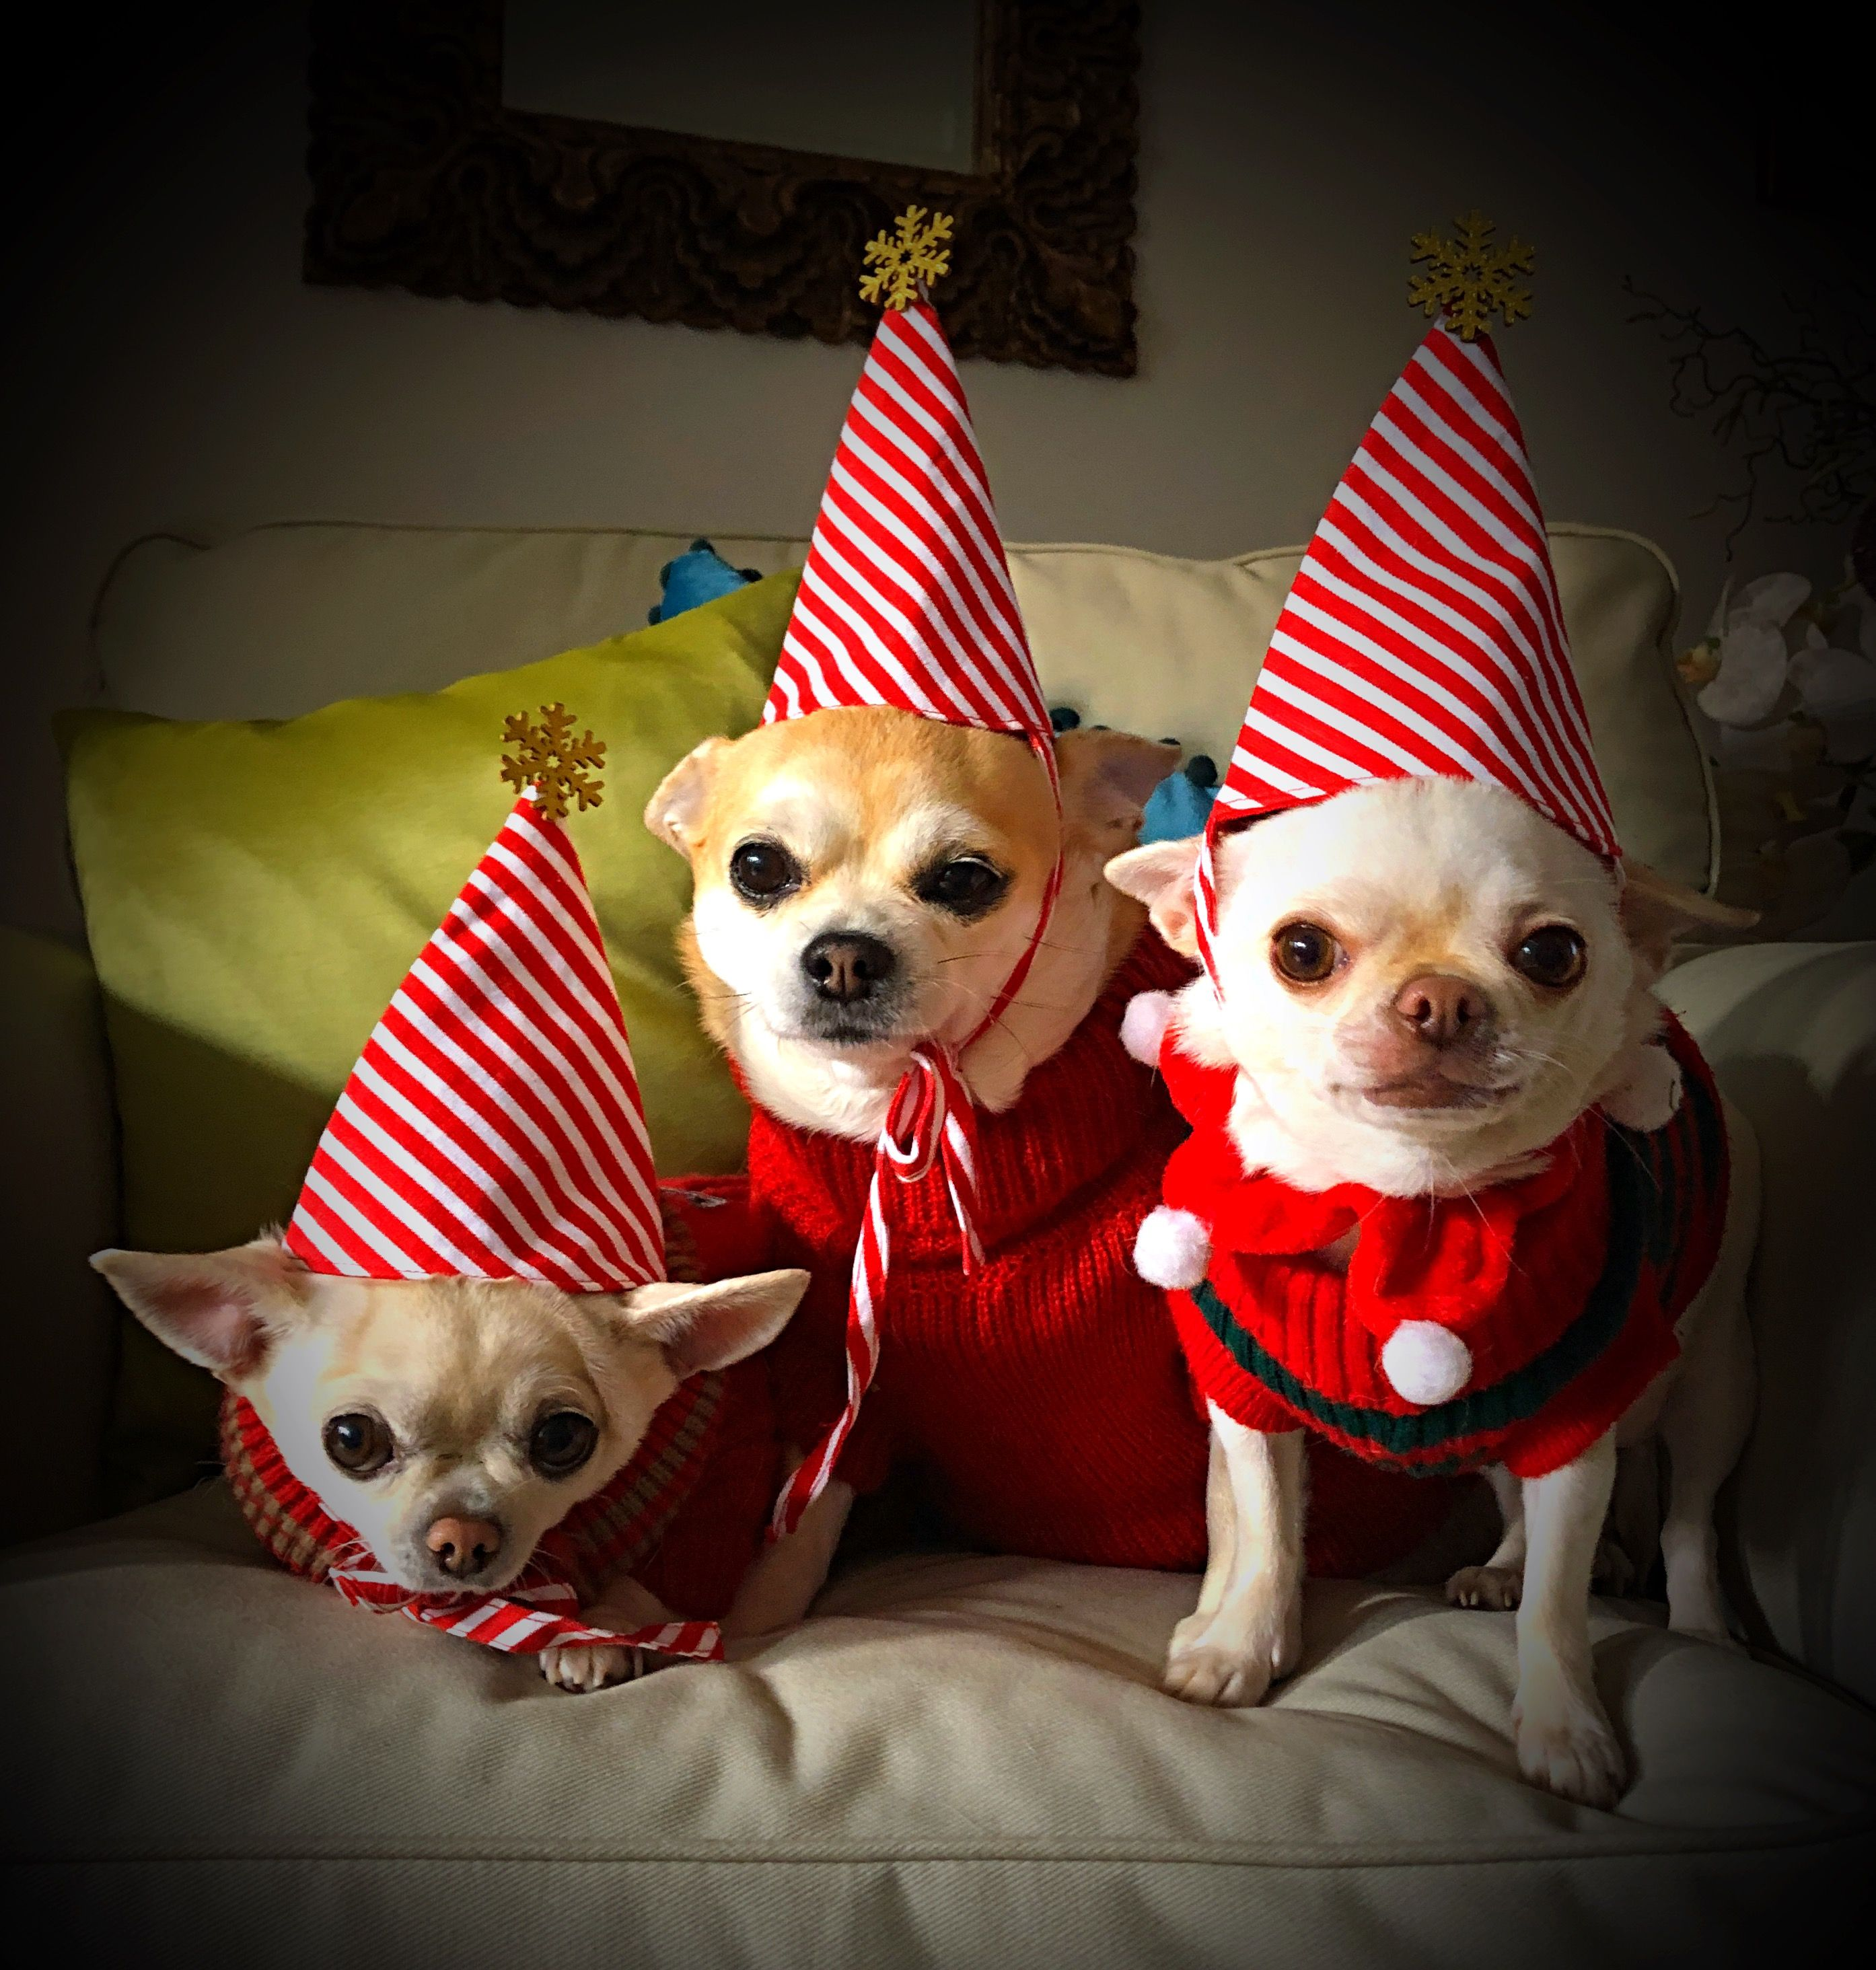 Pin By Tammy Vanburen On Mis Chihuahuas Cute Chihuahua Chihuahua Lover Cute Dogs